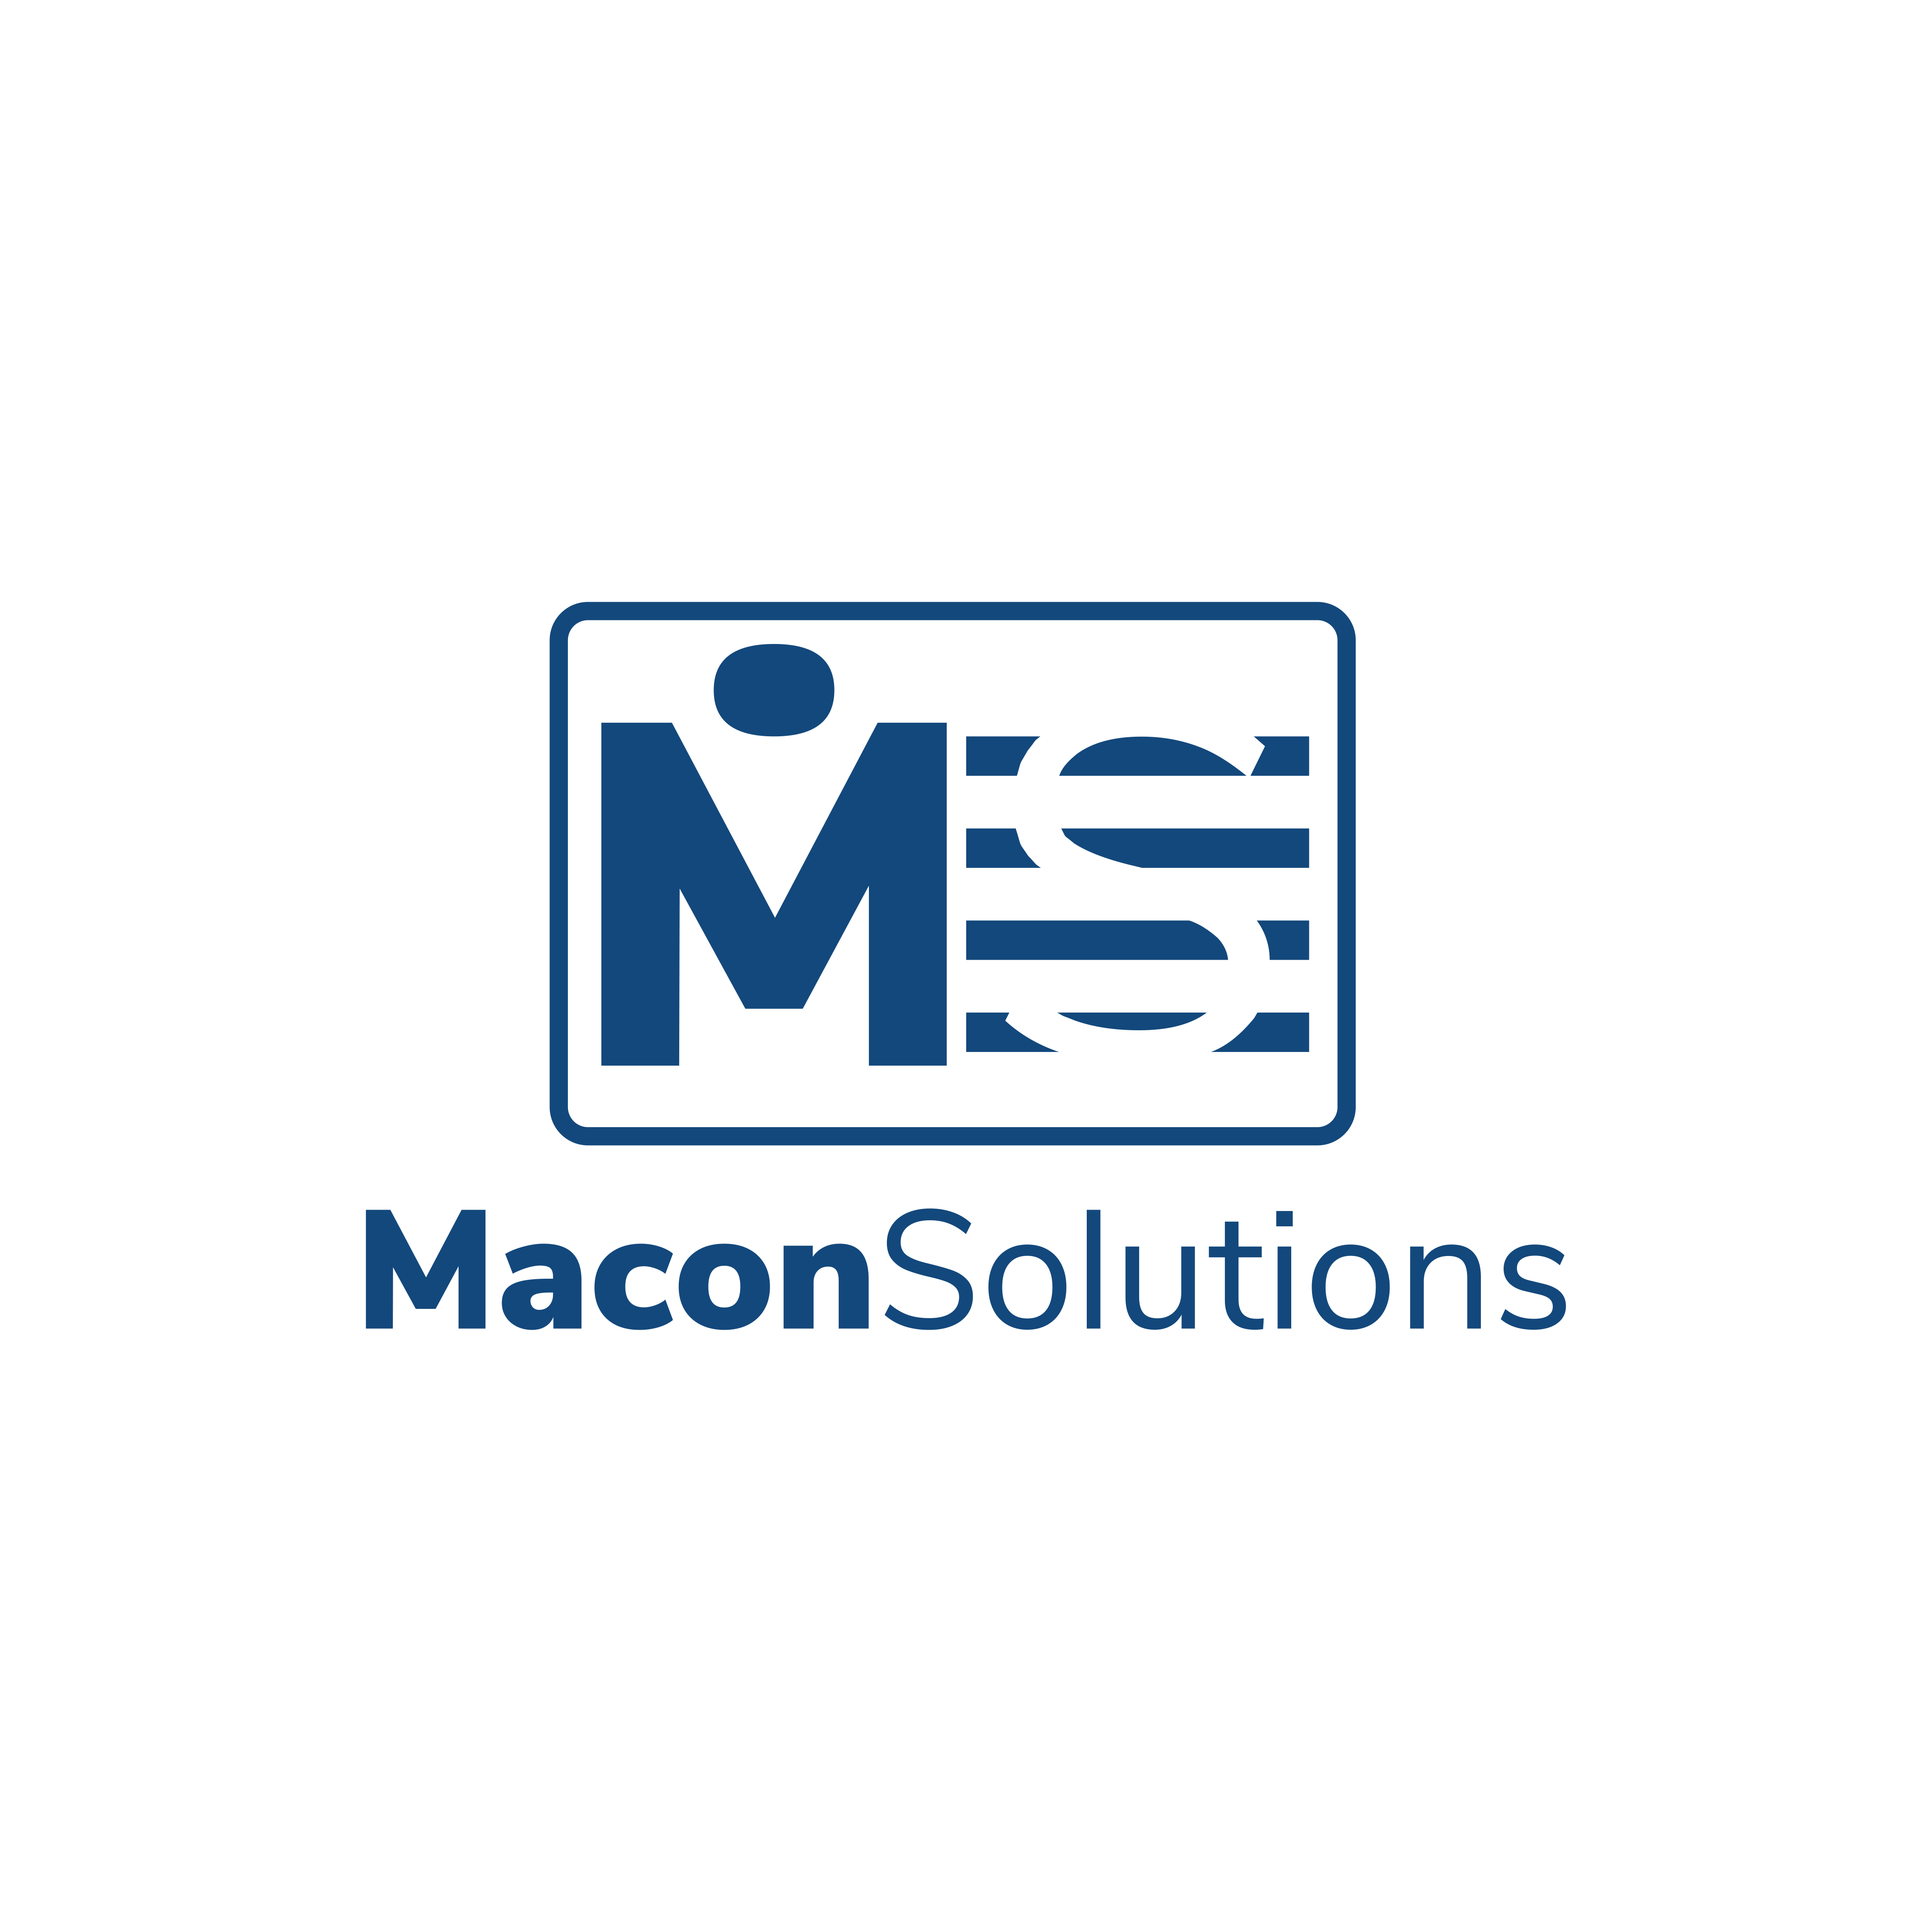 Macon Solutions